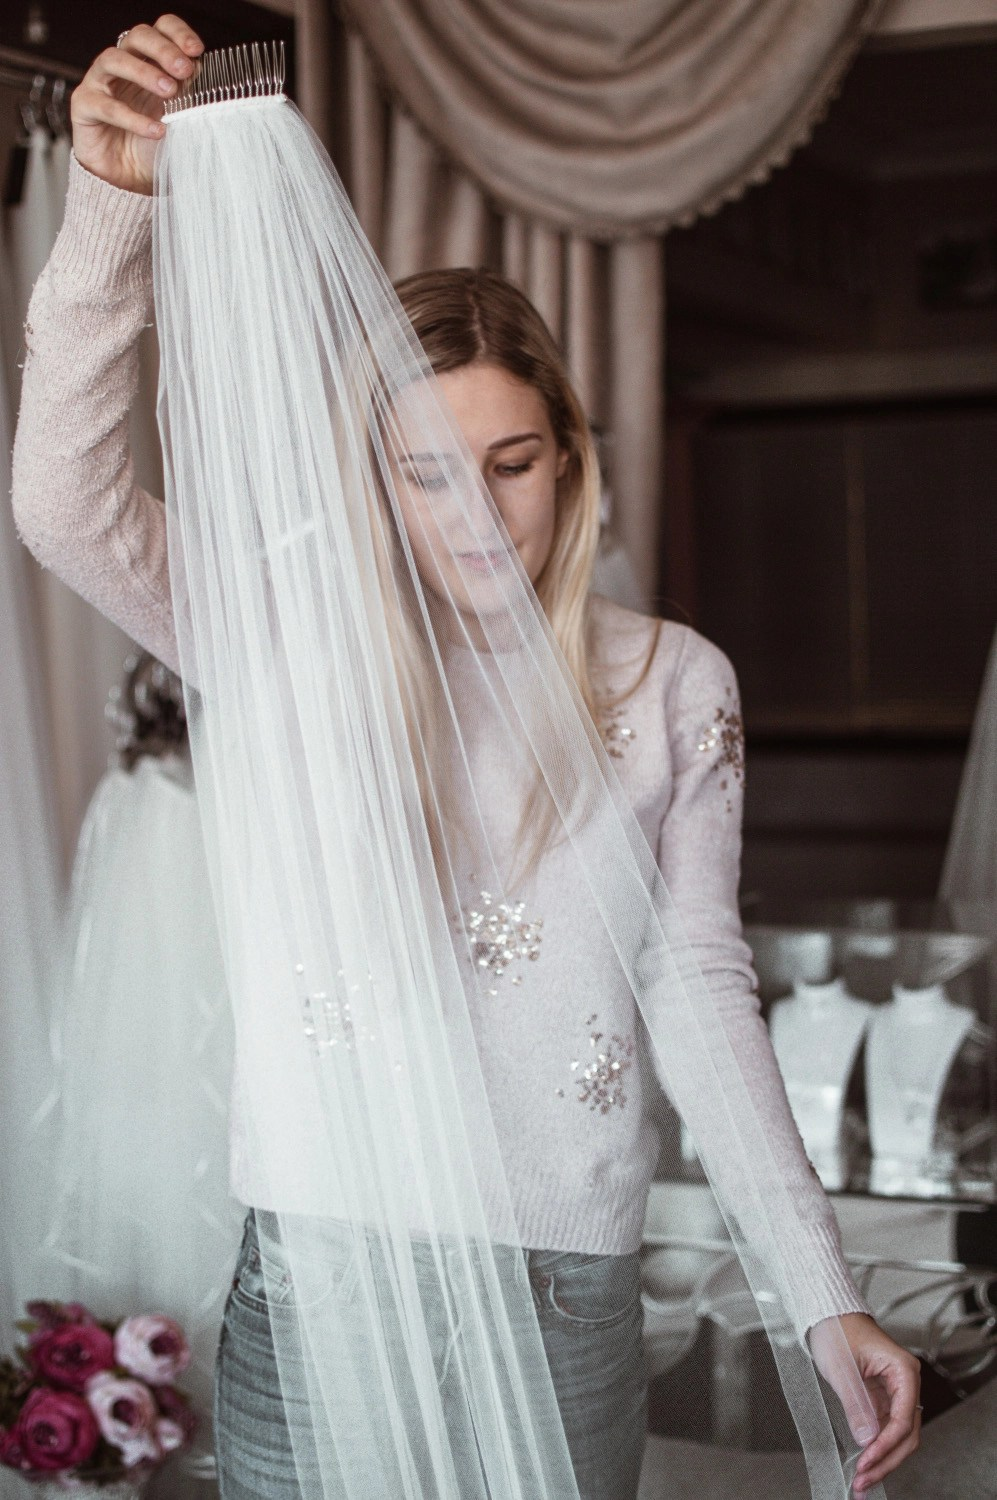 wedding veil care when trying on a home